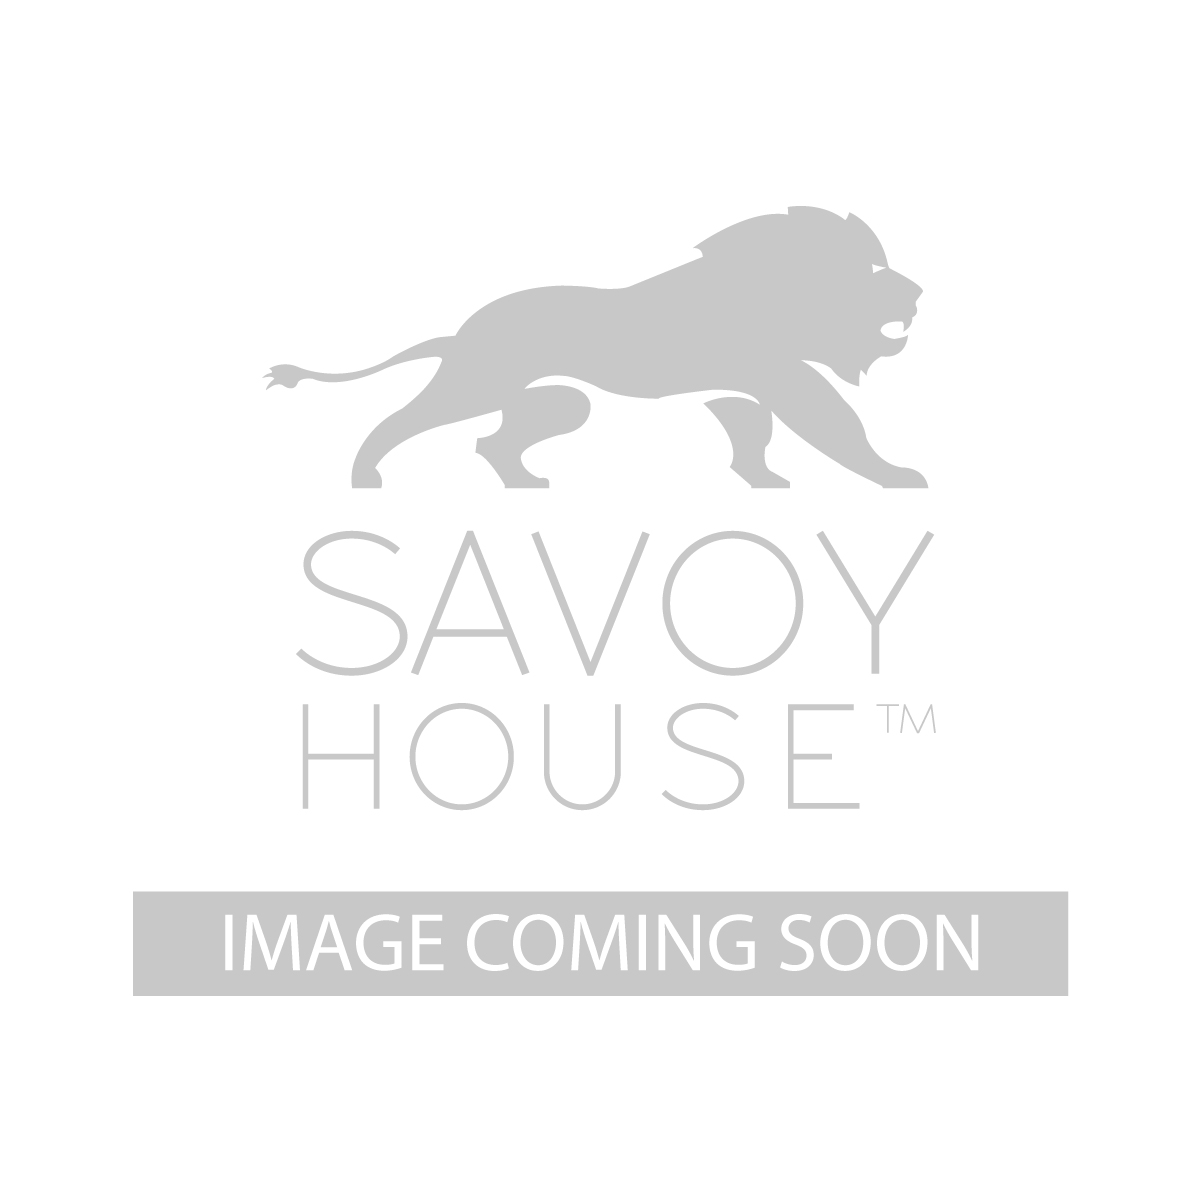 7 4306 5 242 structure 5 light pendant by savoy house for Savoy house com